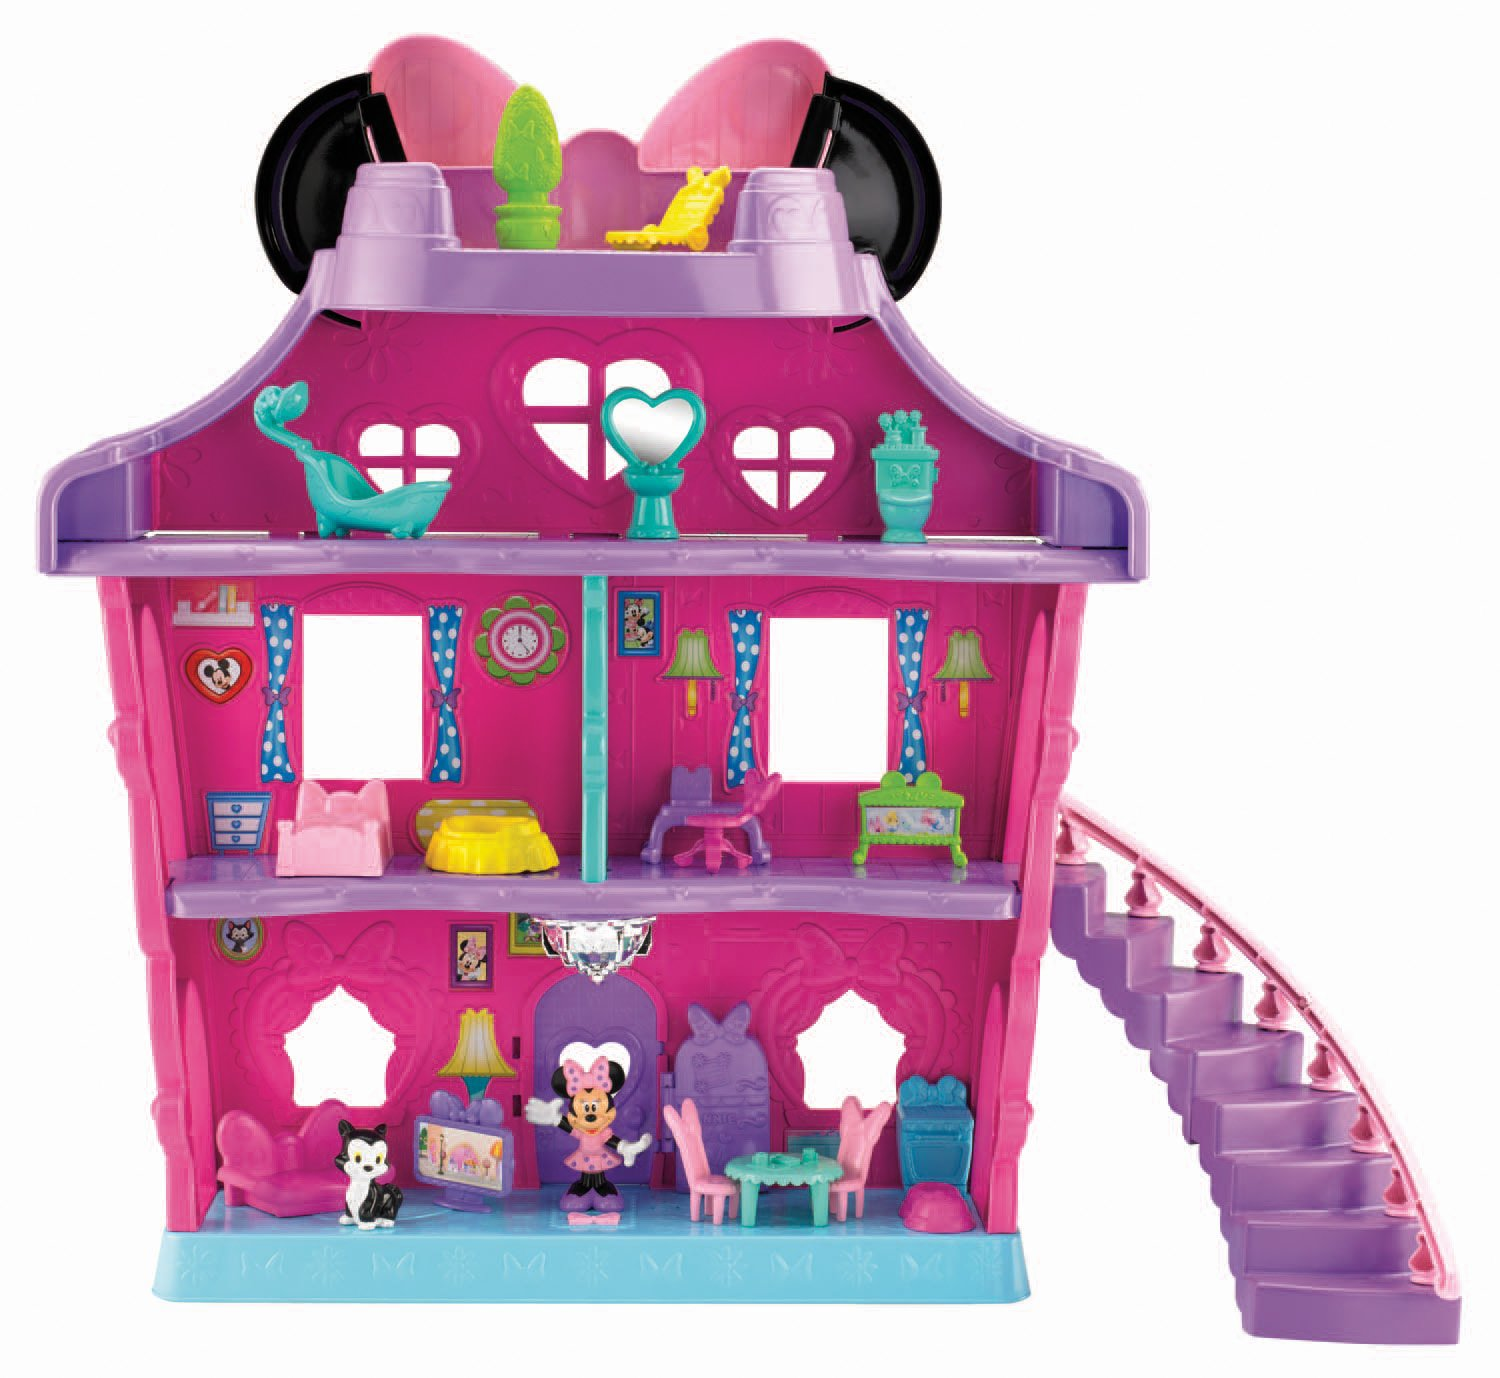 prodigious New Minnie Mouse Toys Part - 4: Amazon.com: Fisher-Price Minnie Mouse - Minnieu0027s Bow Sweet Home: Toys u0026  Games